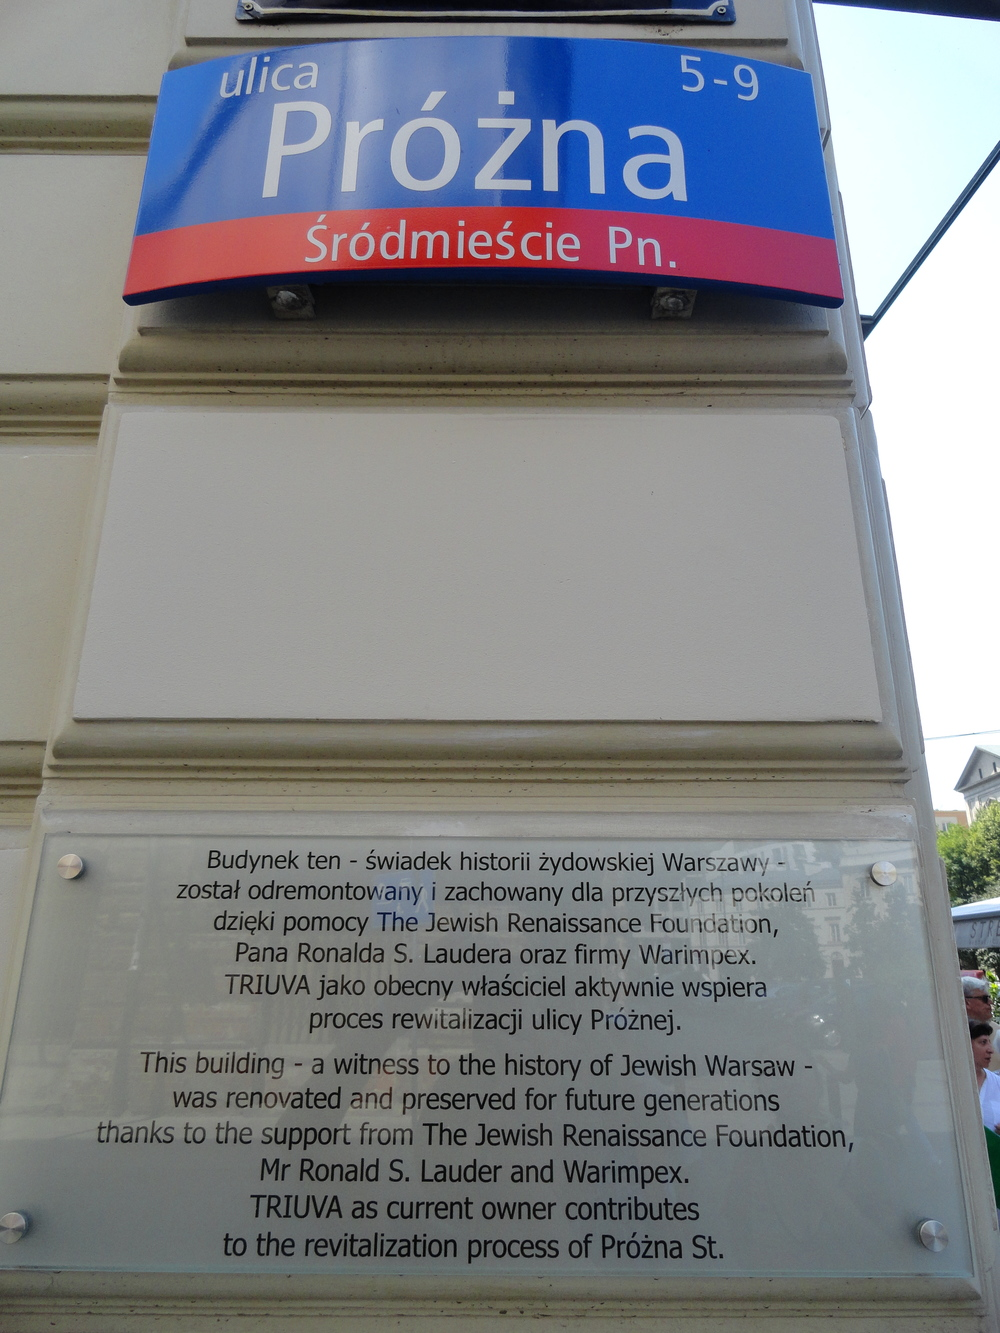 Plaque on the building at the end of Próźna street